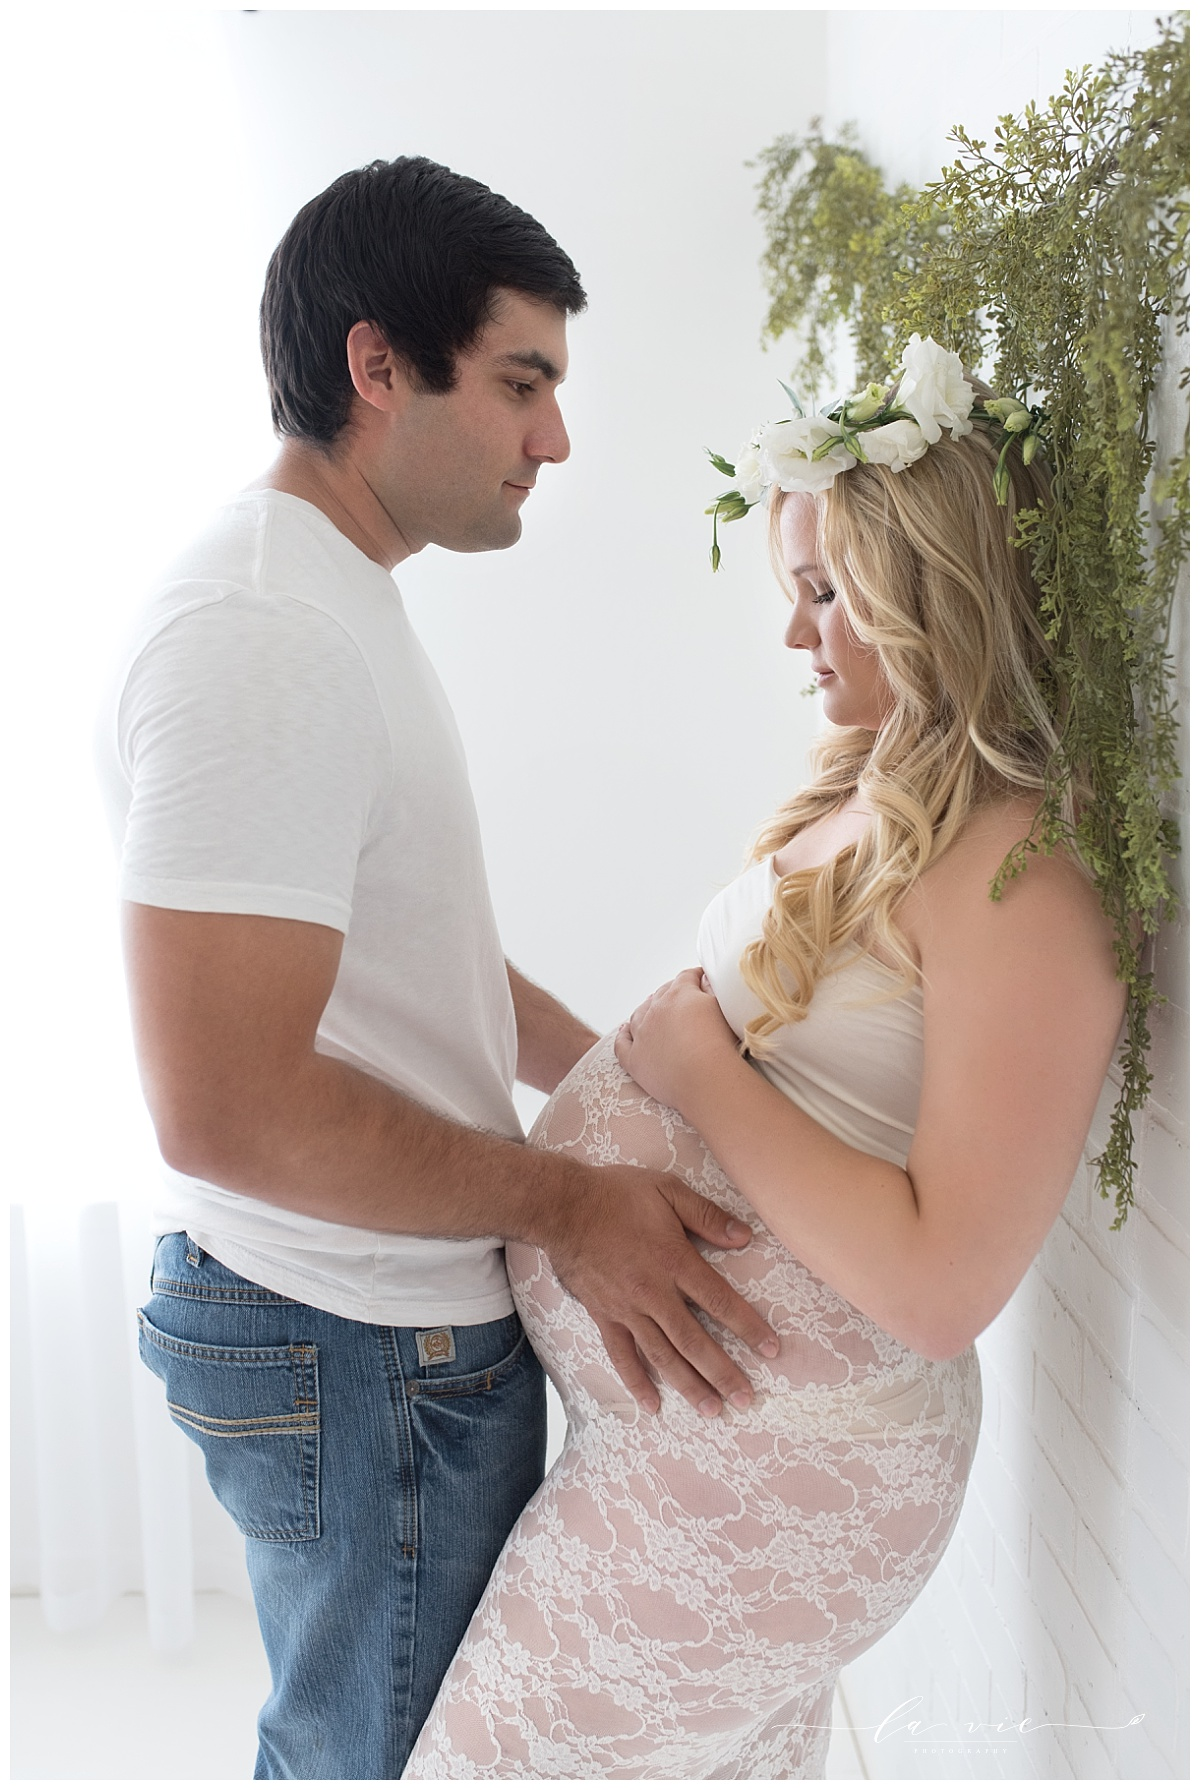 couples maternity portrait all white set with greenery